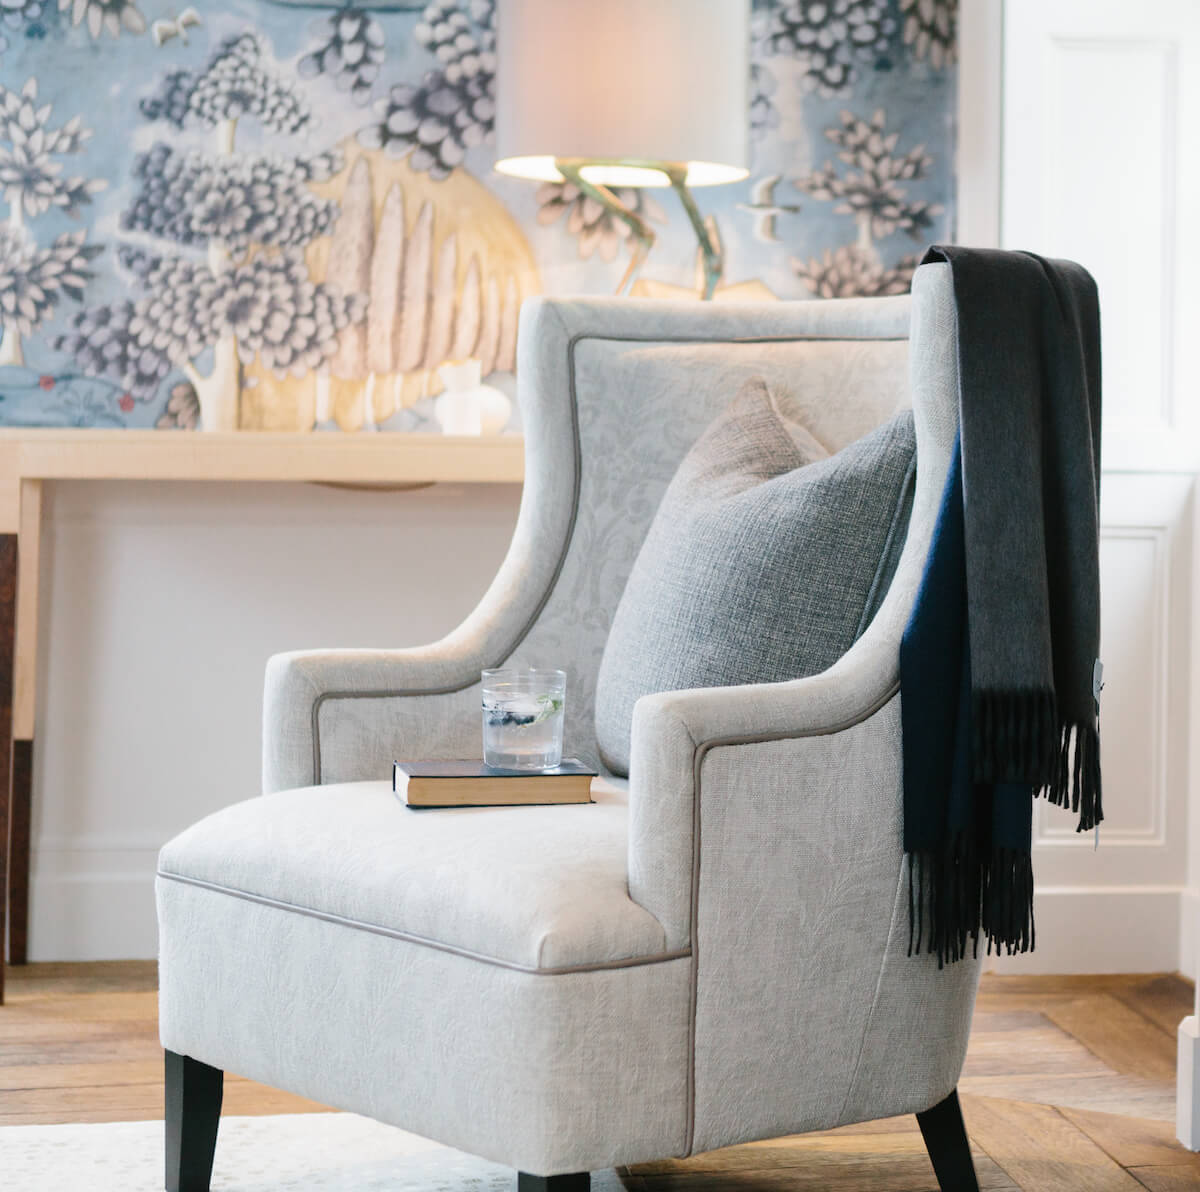 Helm Chair - Large Armchair by Charlotte James Furniture for AUTHOR